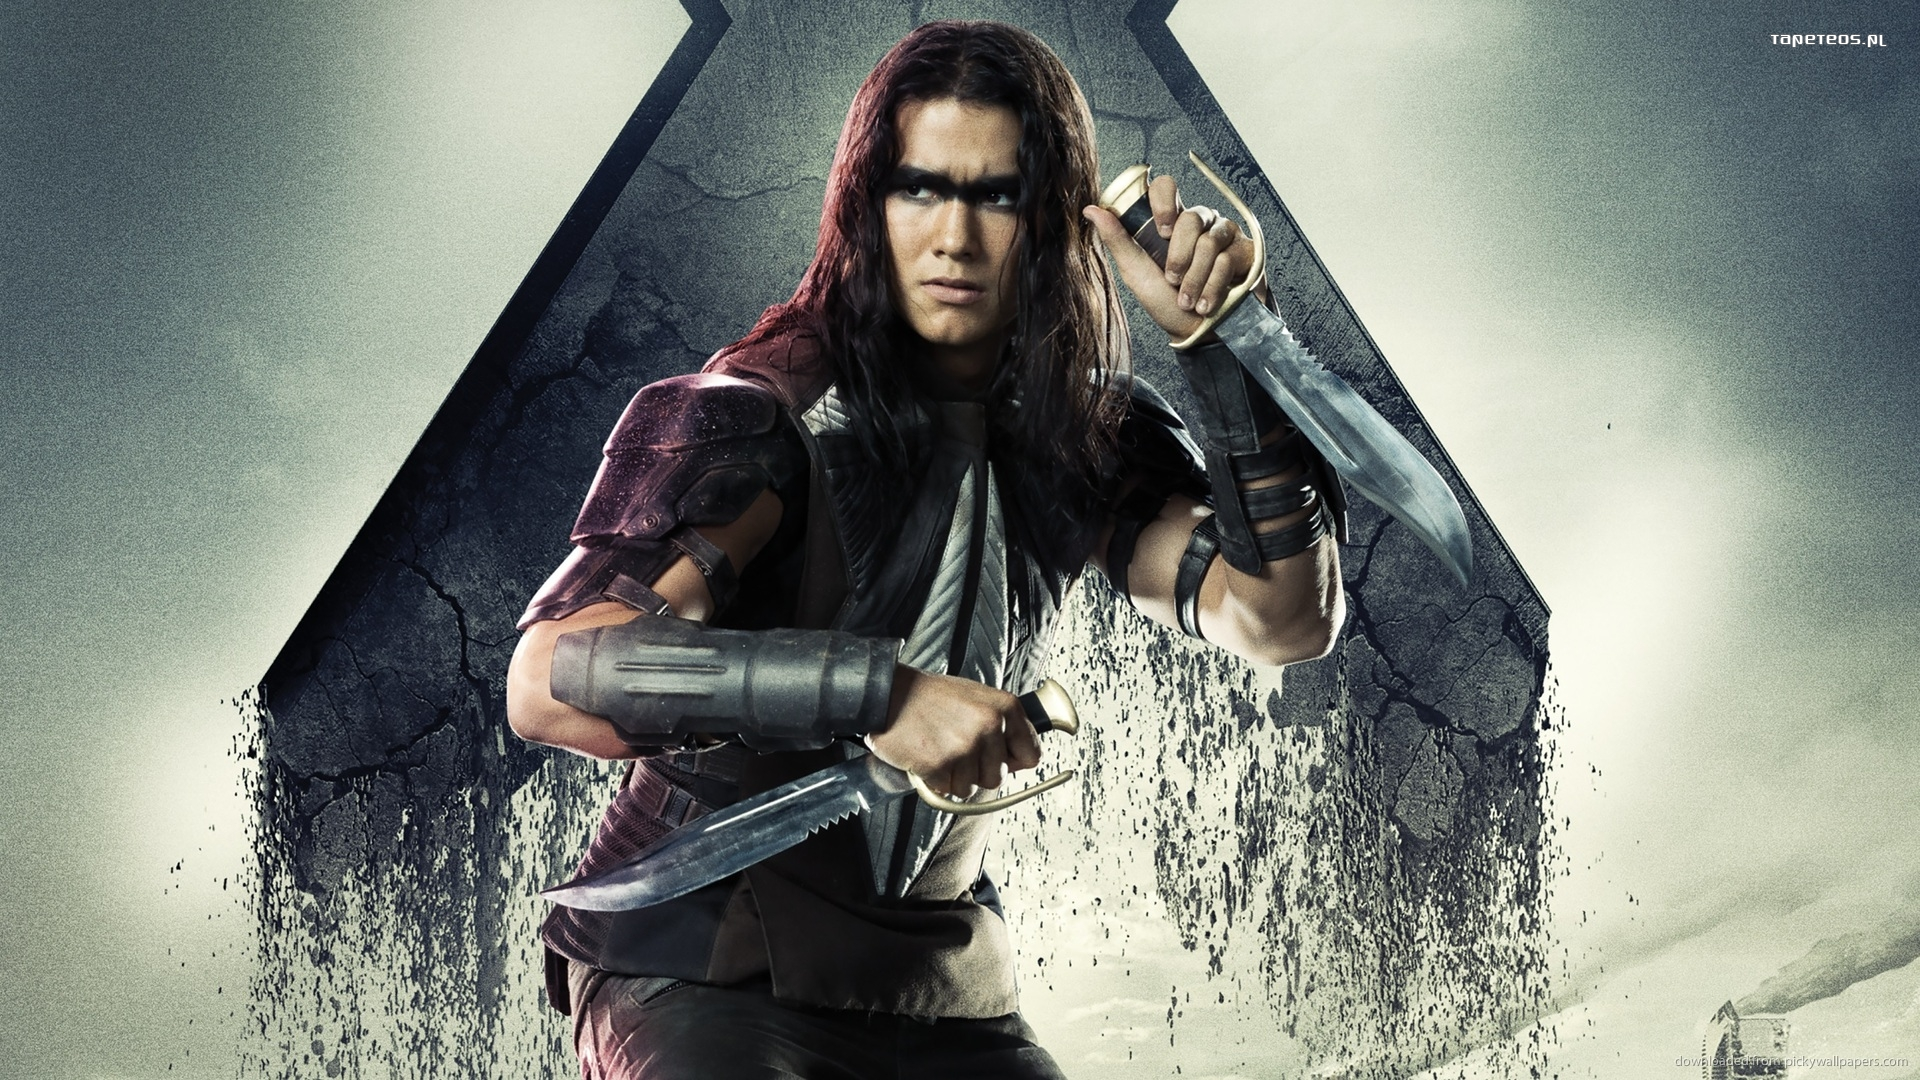 X-Men Days of Future Past 052 Booboo Stewart, Warpath